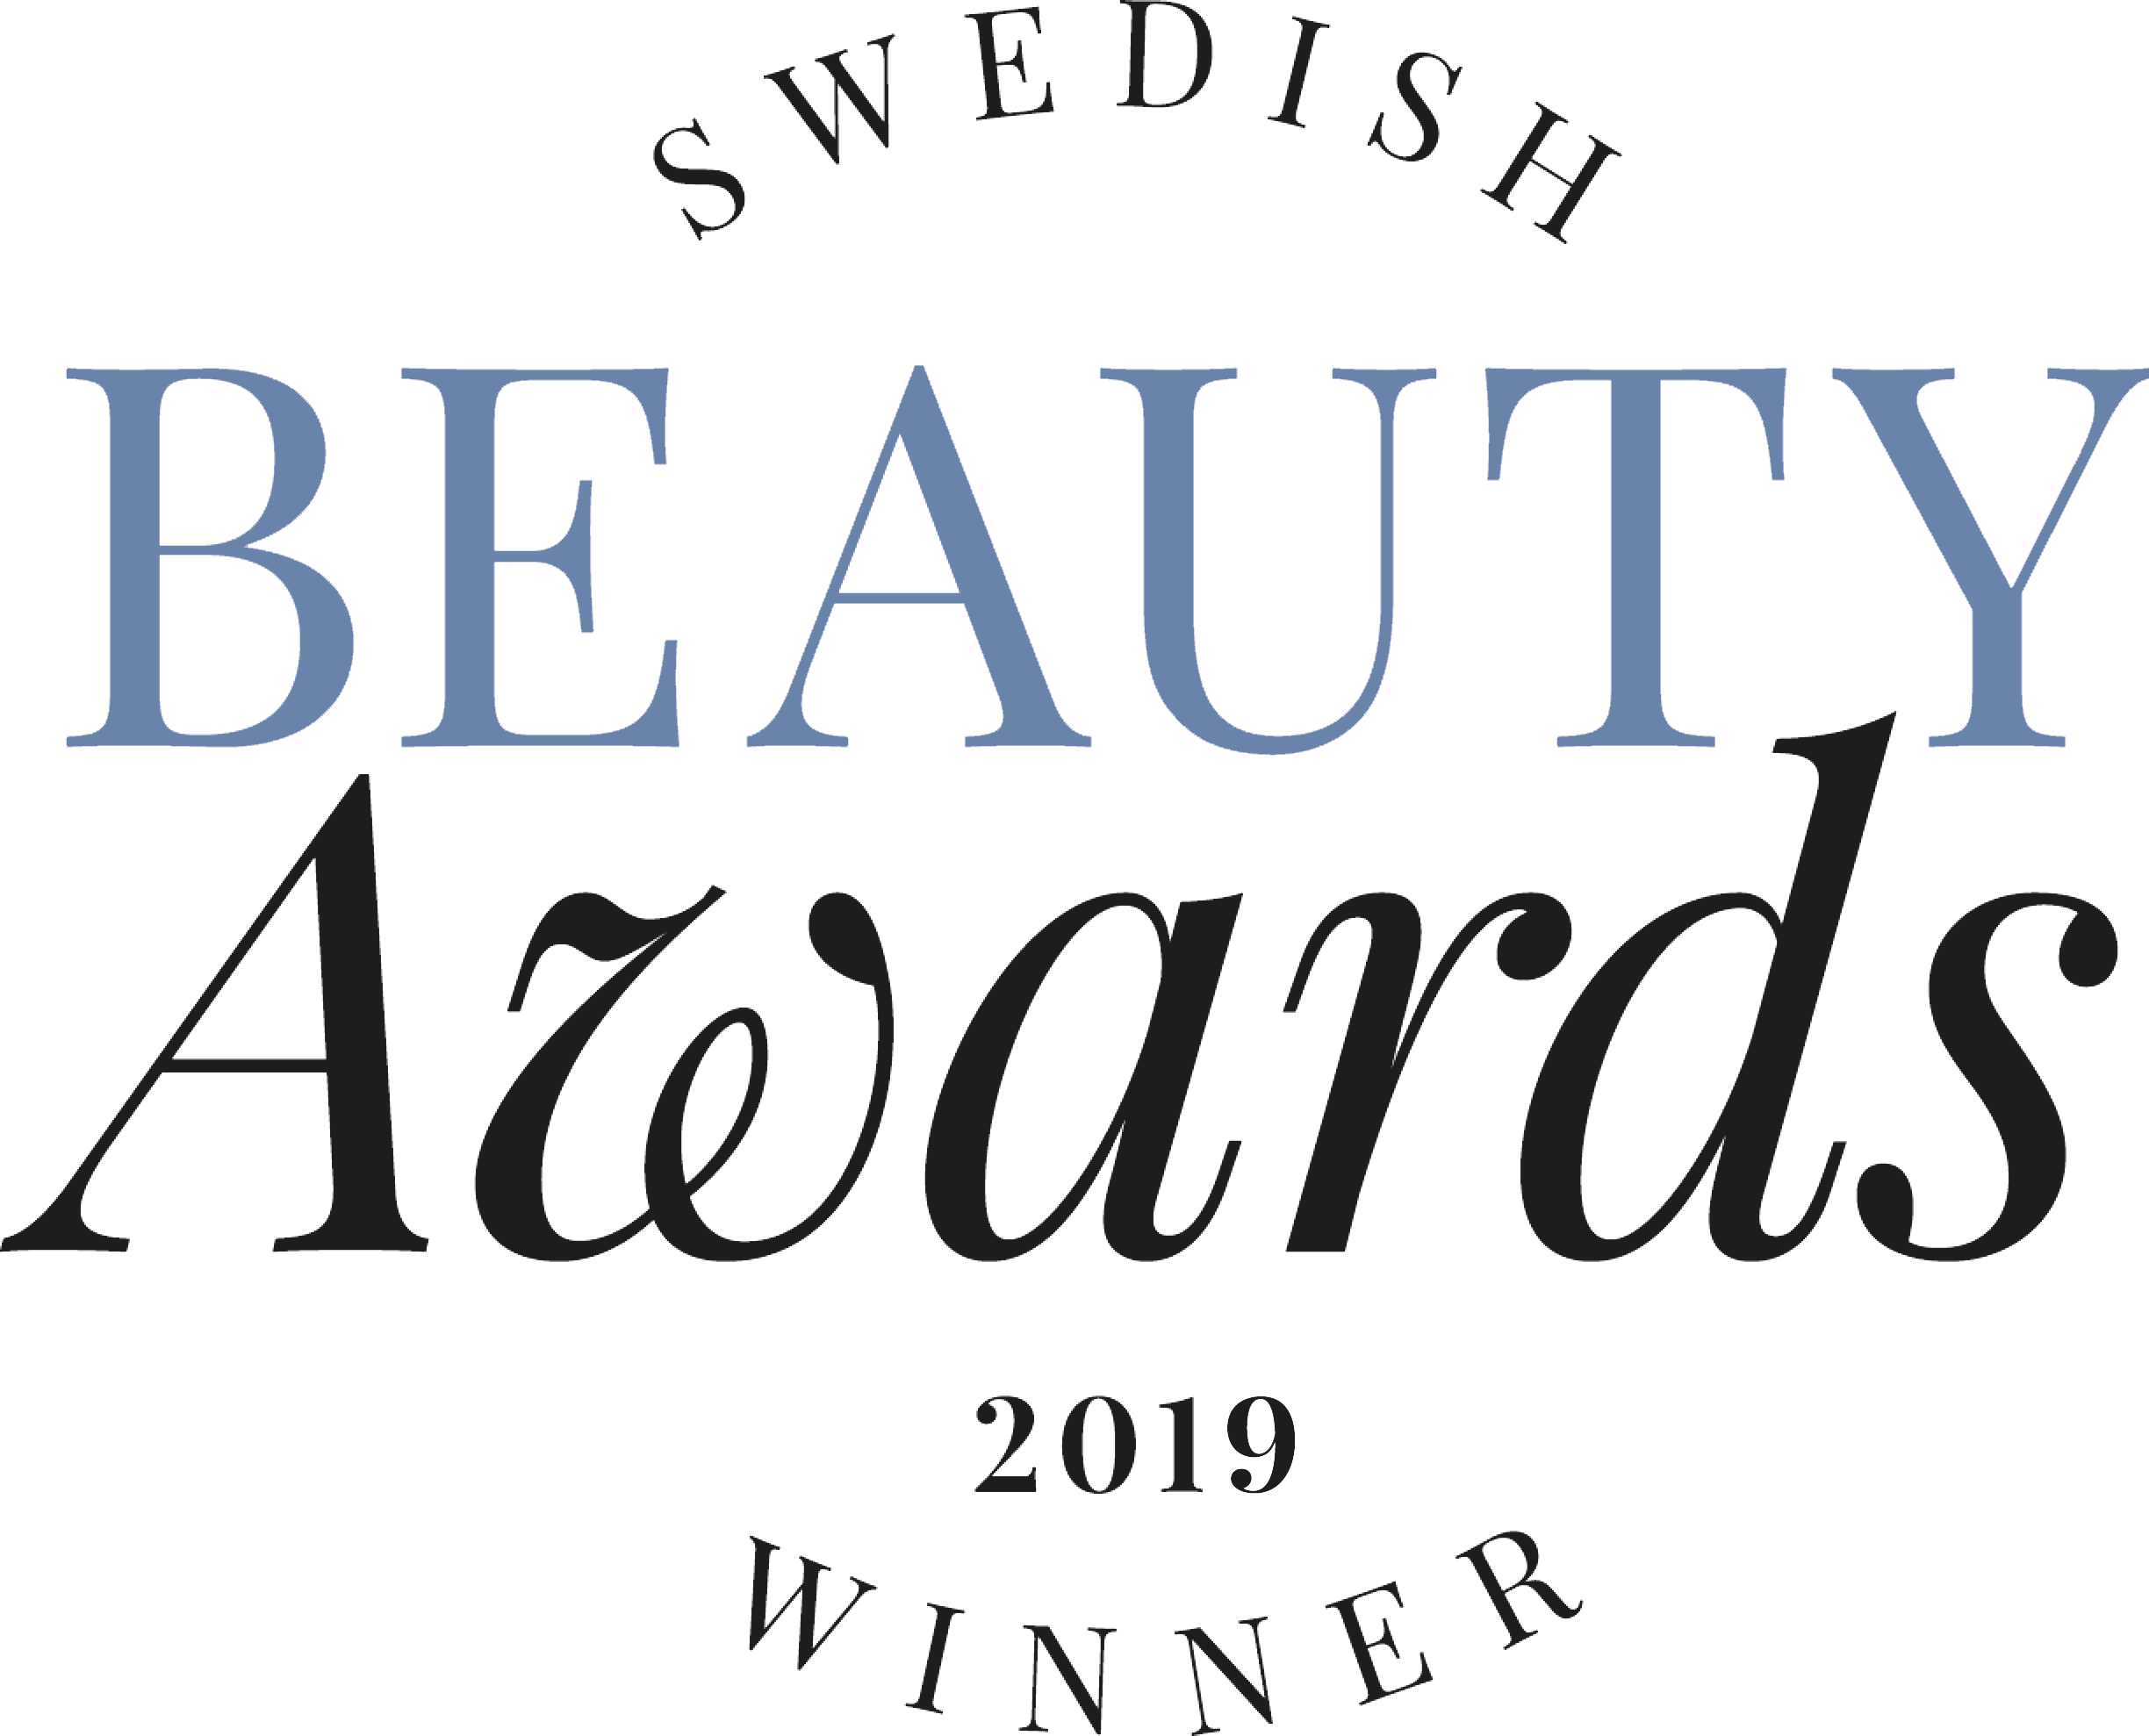 Vinnare av Swedish Beauty Awards 2019